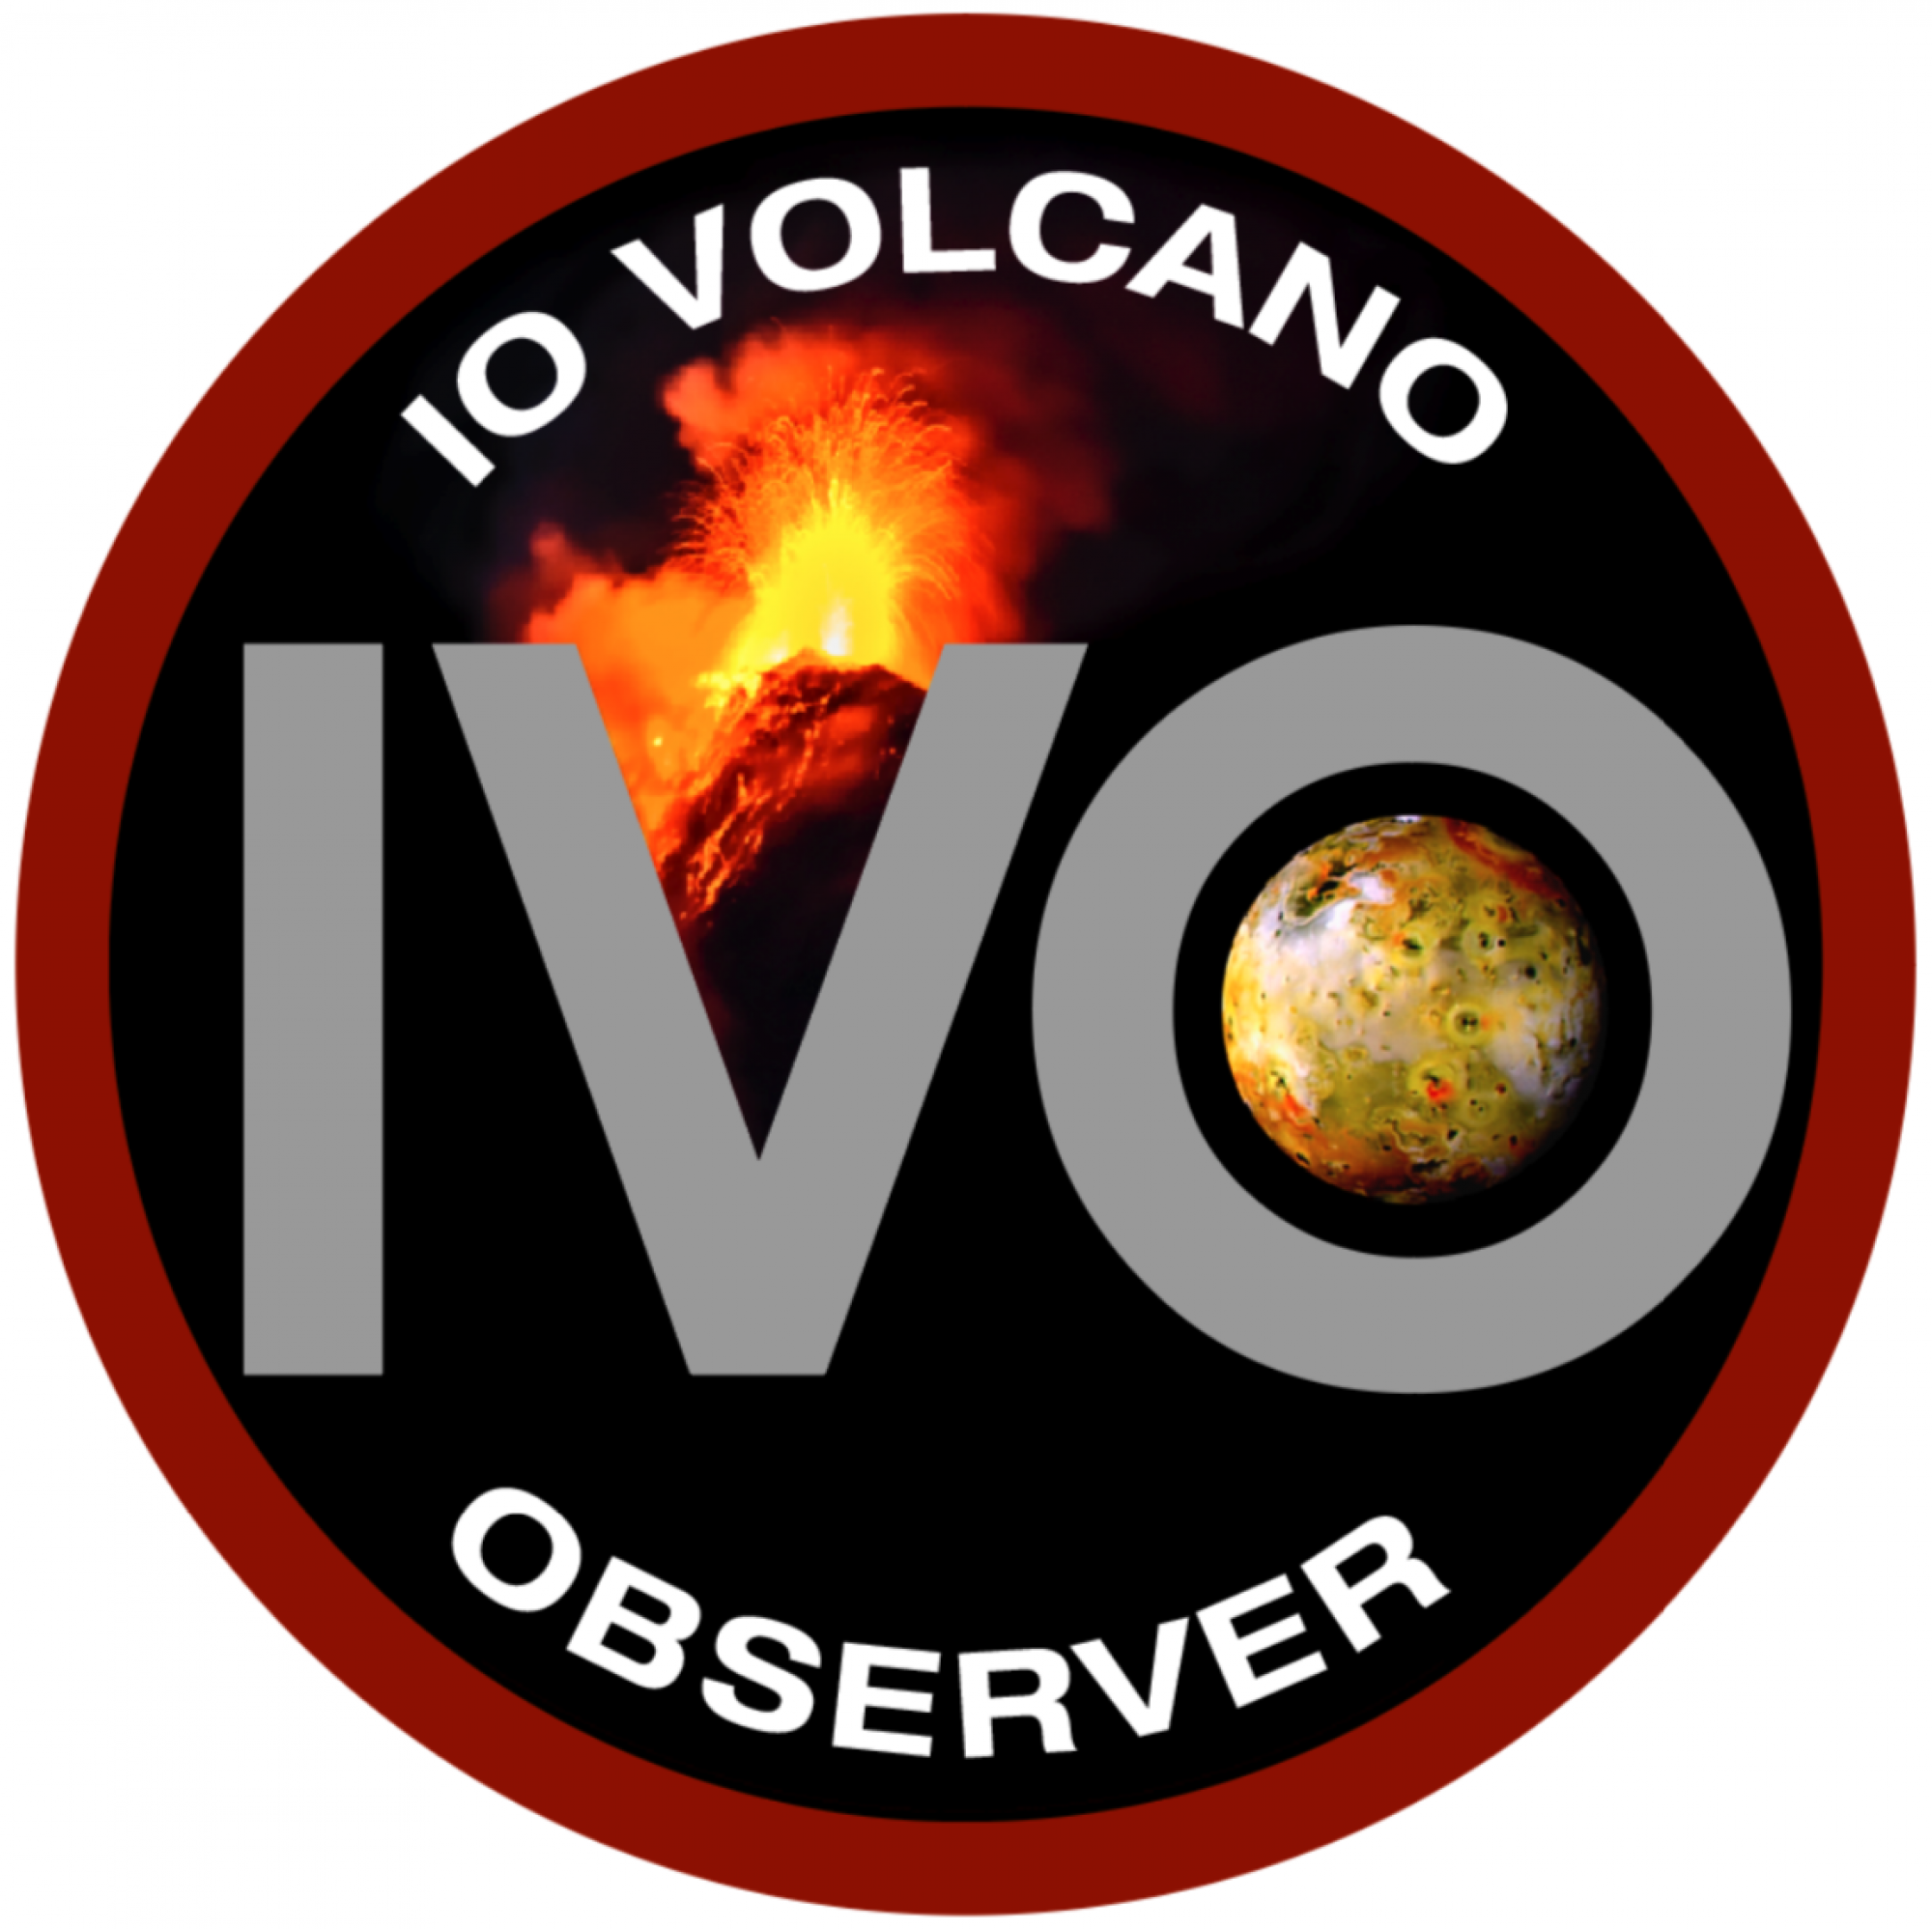 The Io Volcano Observer, or IVO, logo.